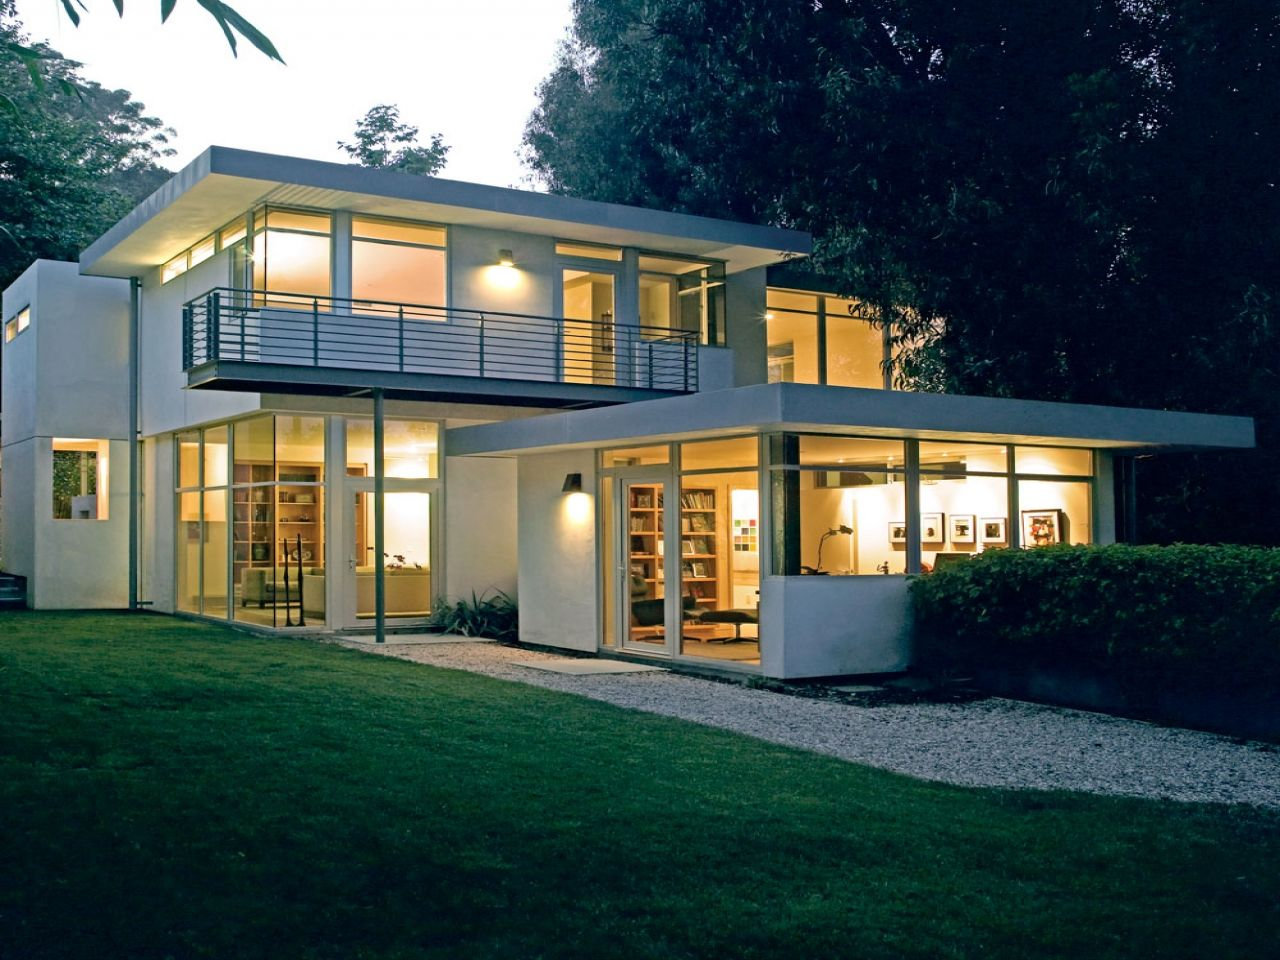 10 Awesomely Simple Modern House Plans (With images ...